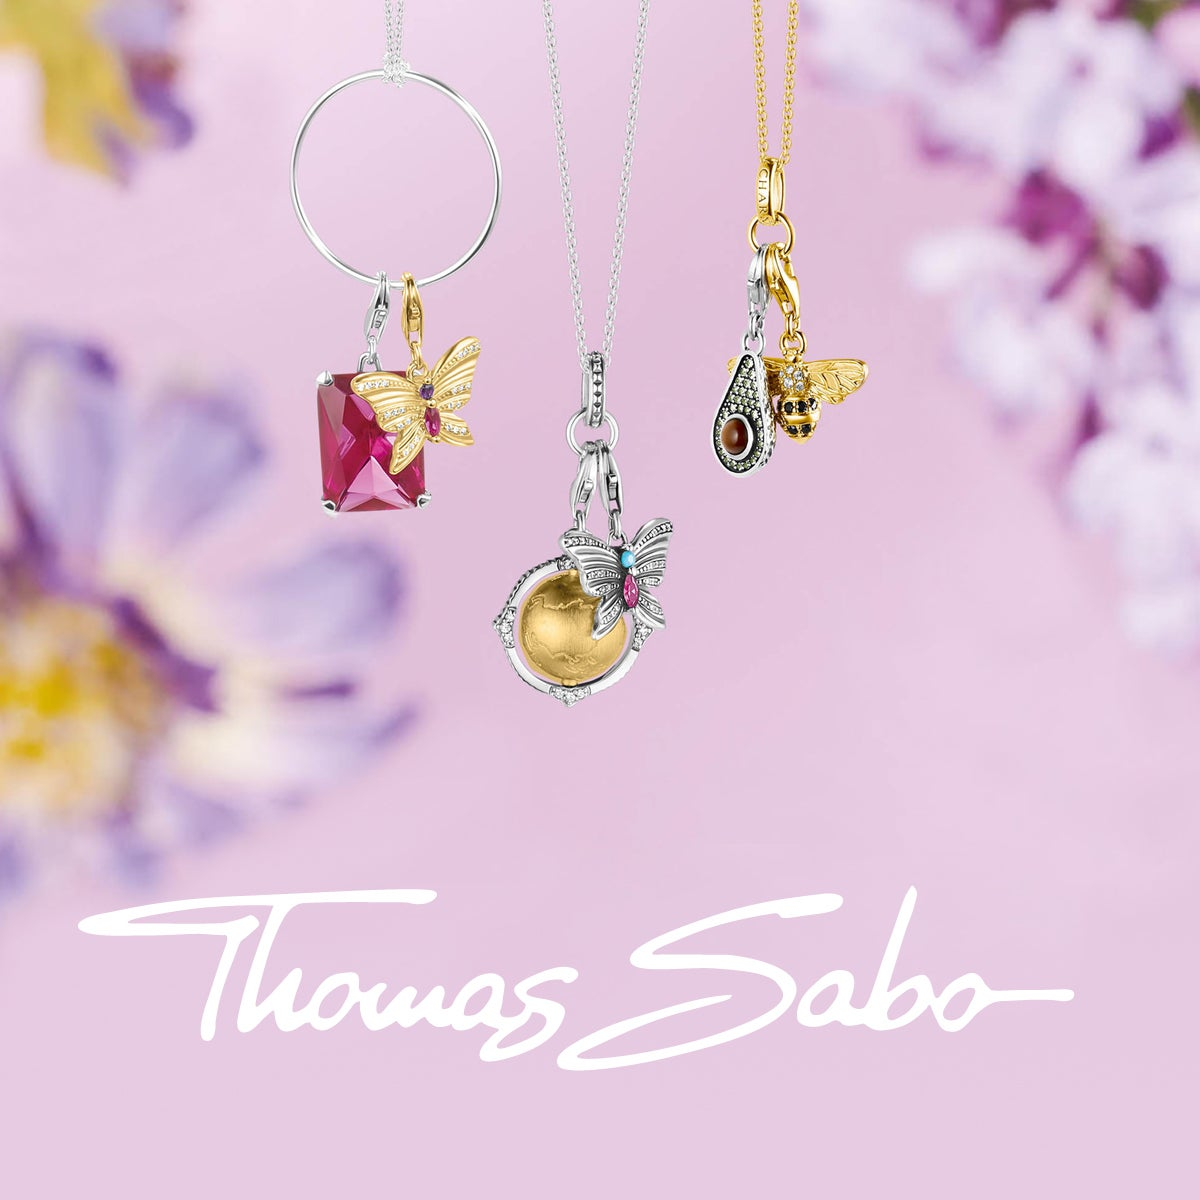 Free Delivery on all Thomas Sabo